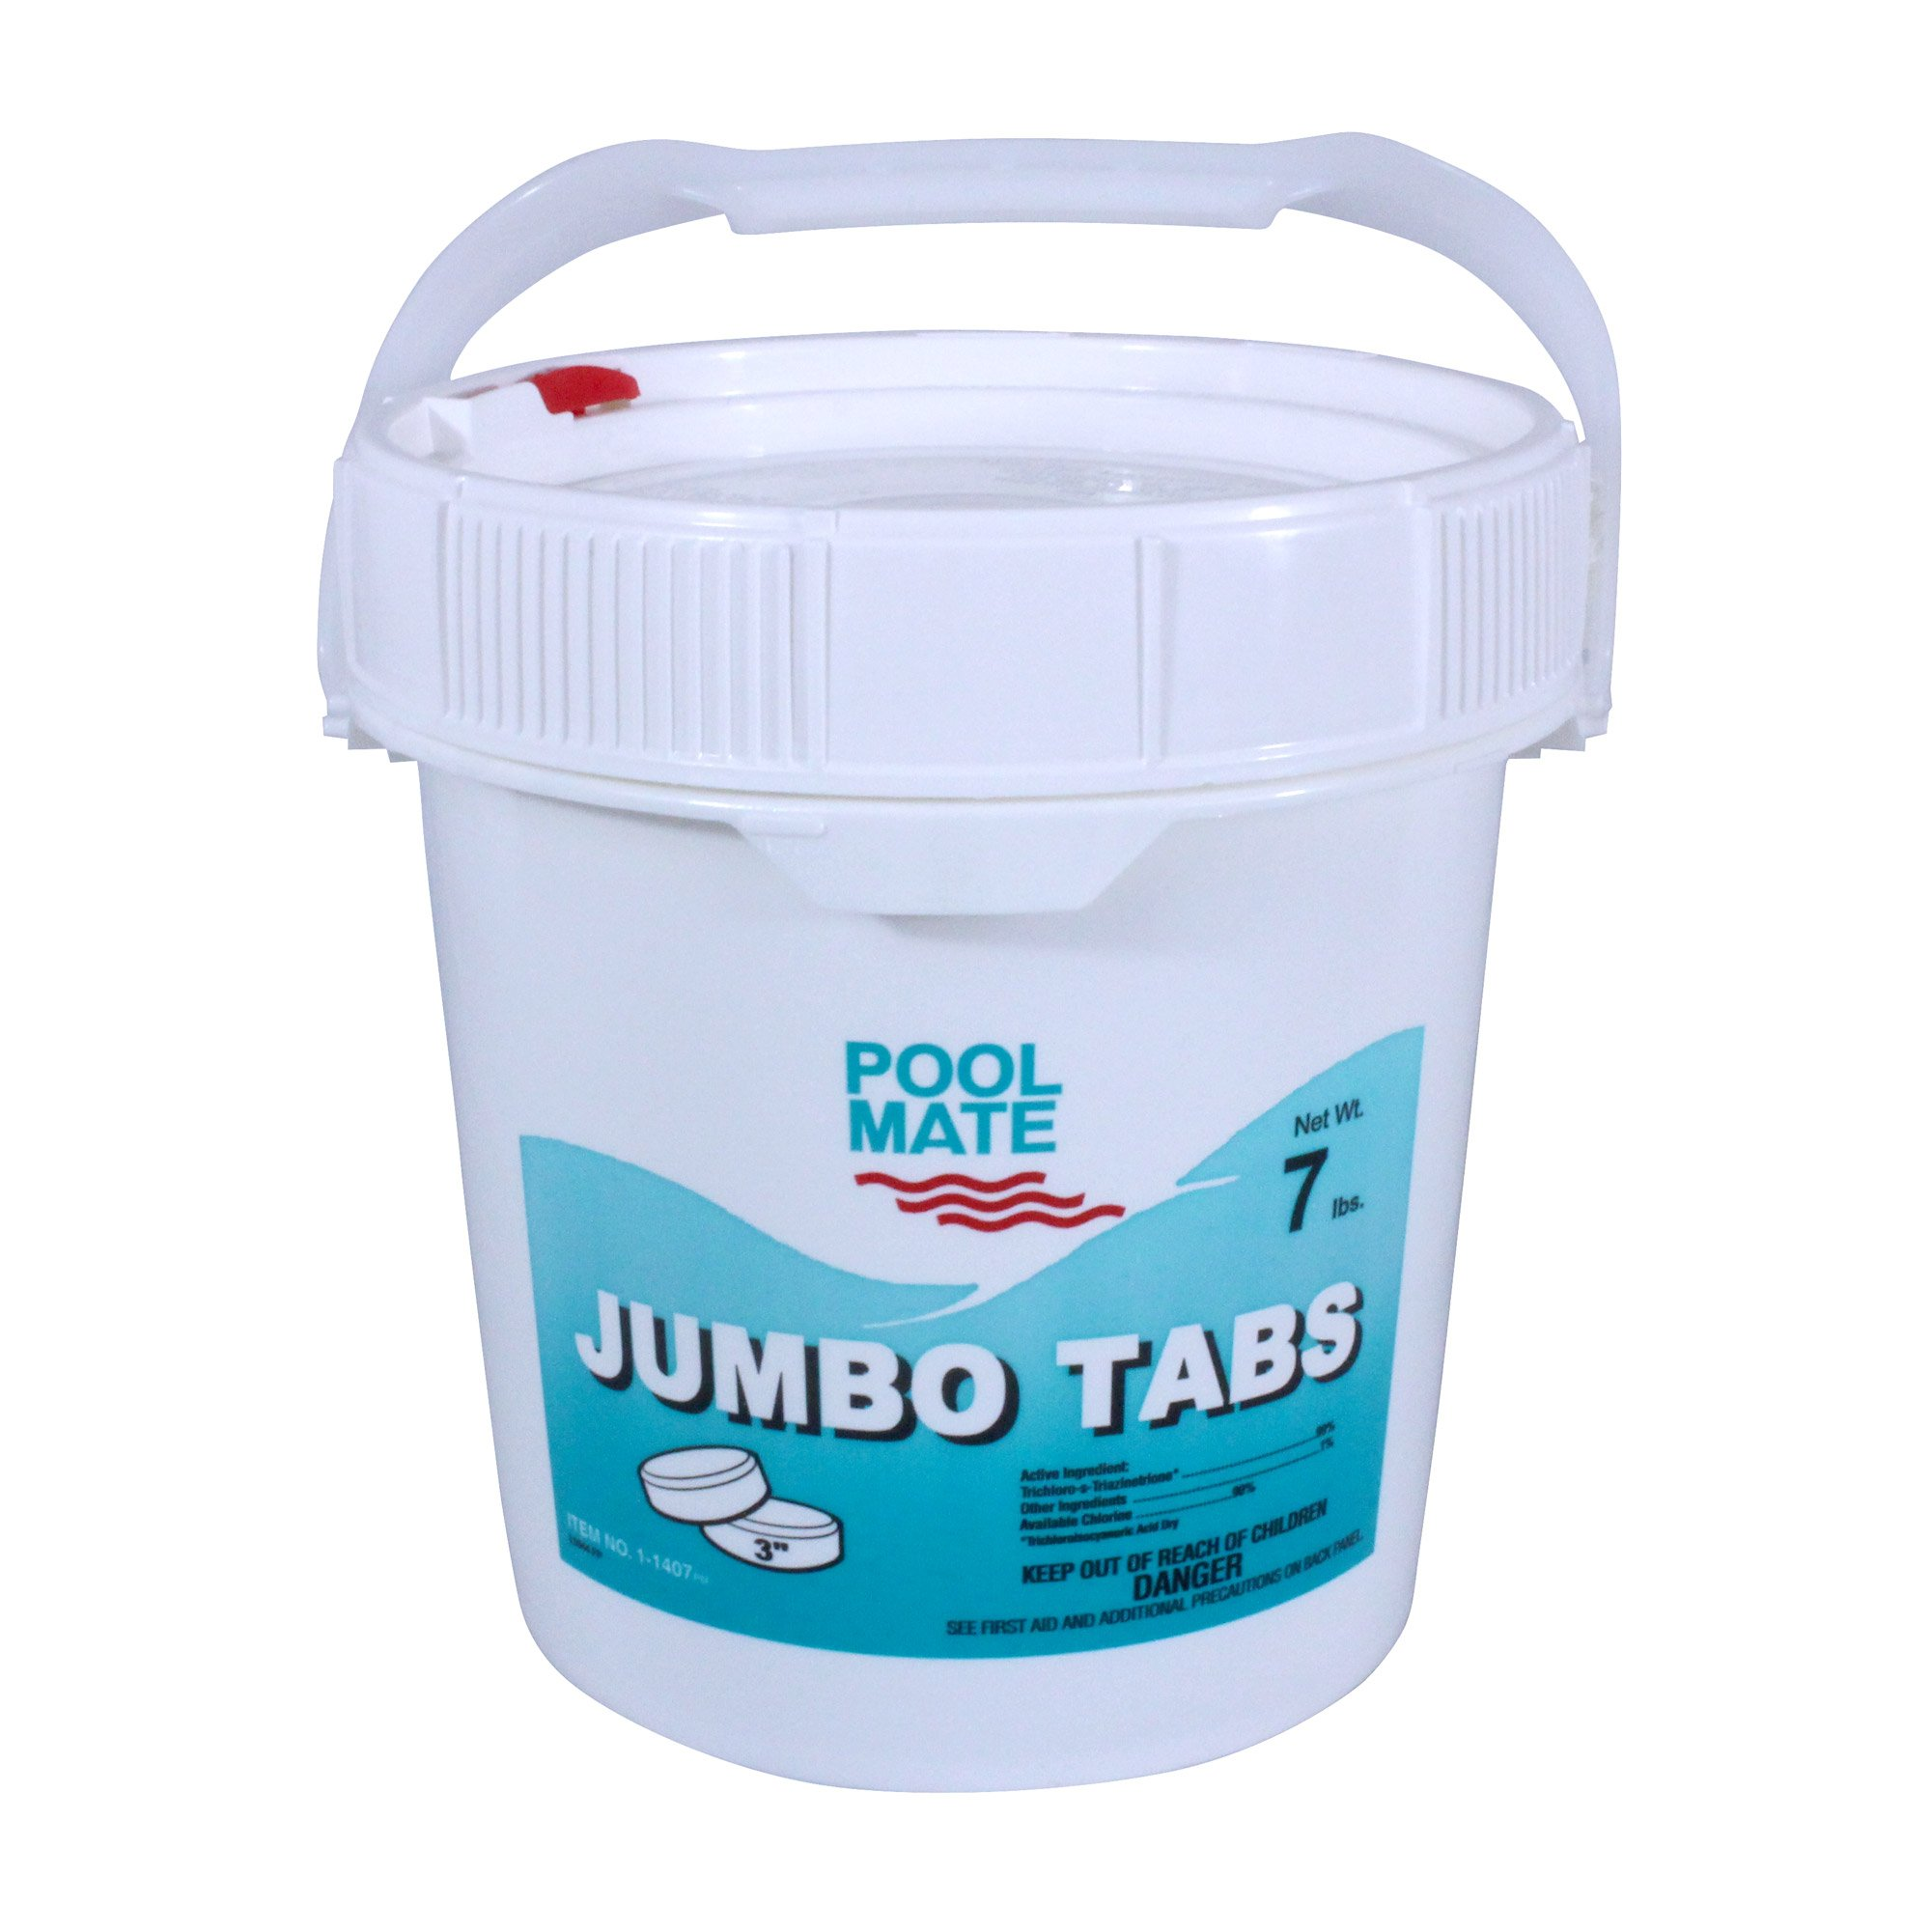 Pool Mate 1-1407 Jumbo 3-Inch Chlorine Tablets, 7-Pound by Pool Mate